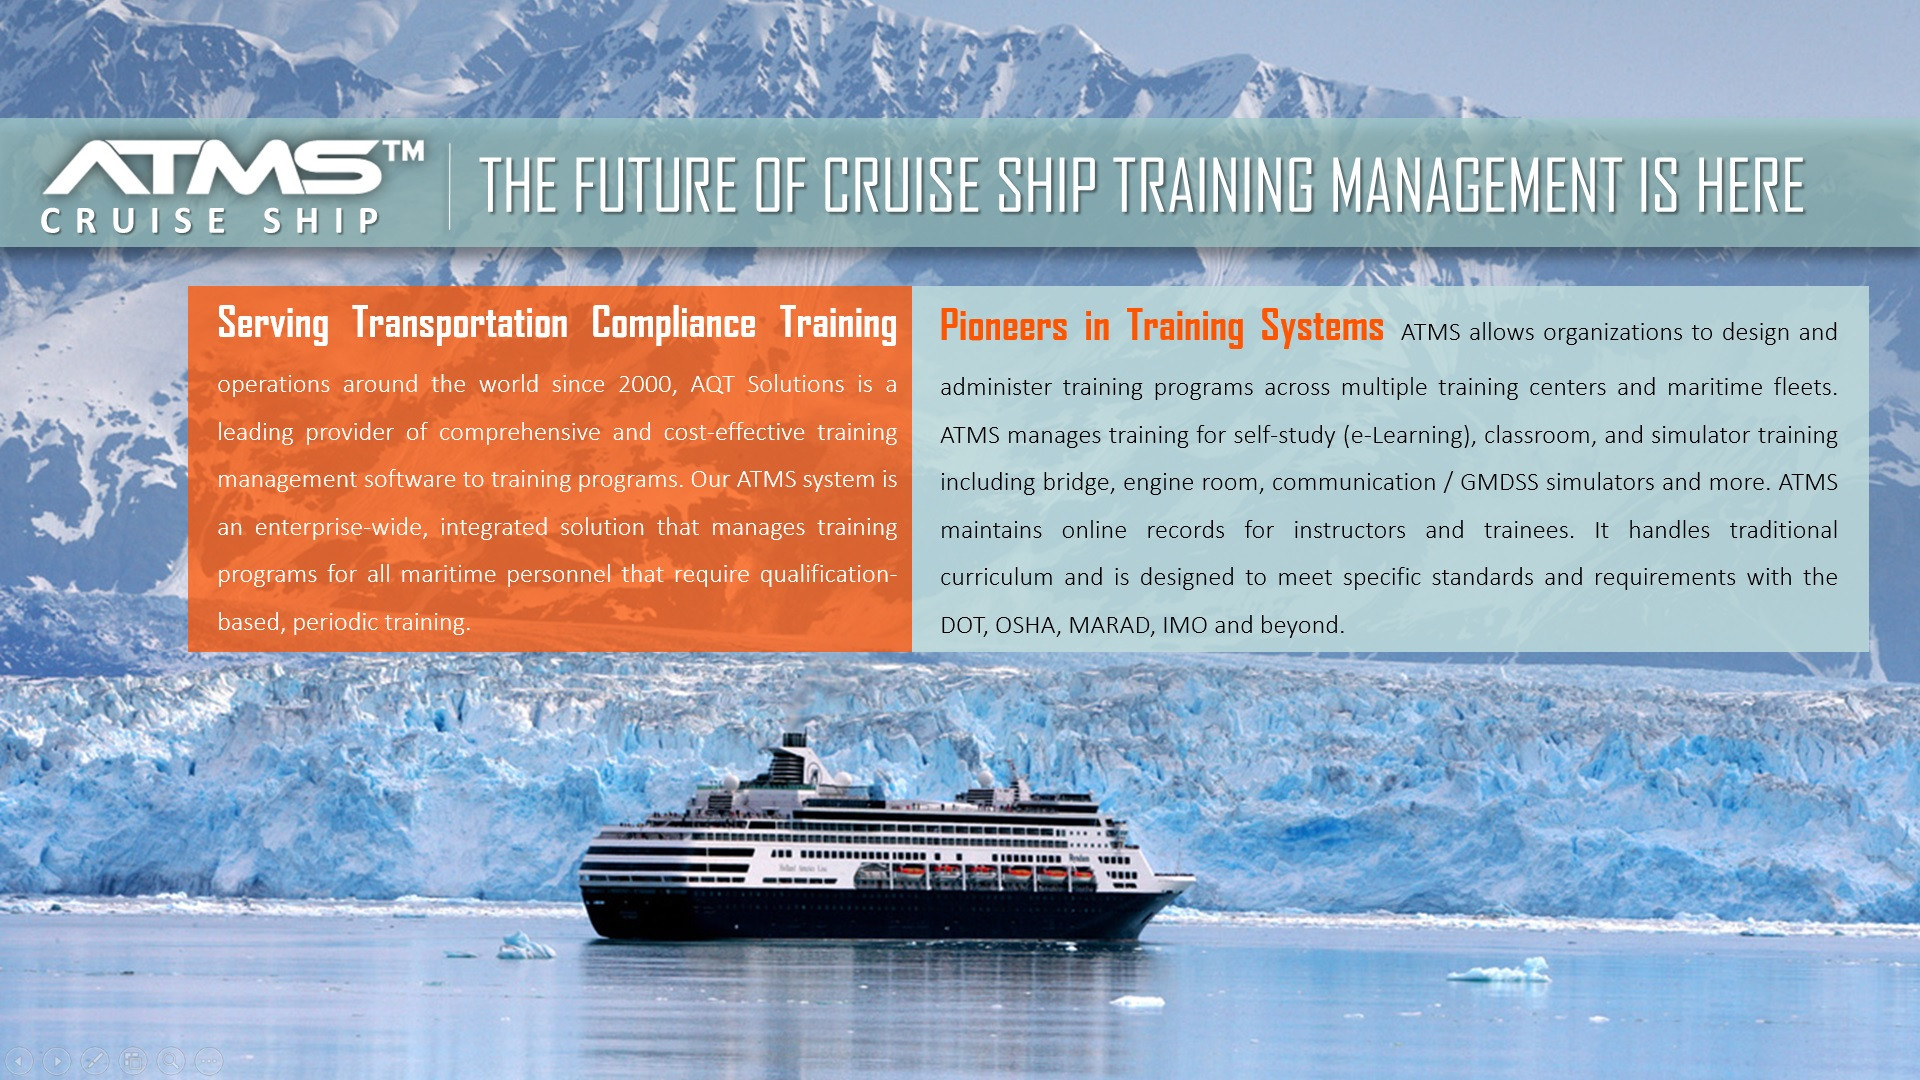 Cruise-Ship-Training-Systems-Slide-2-1